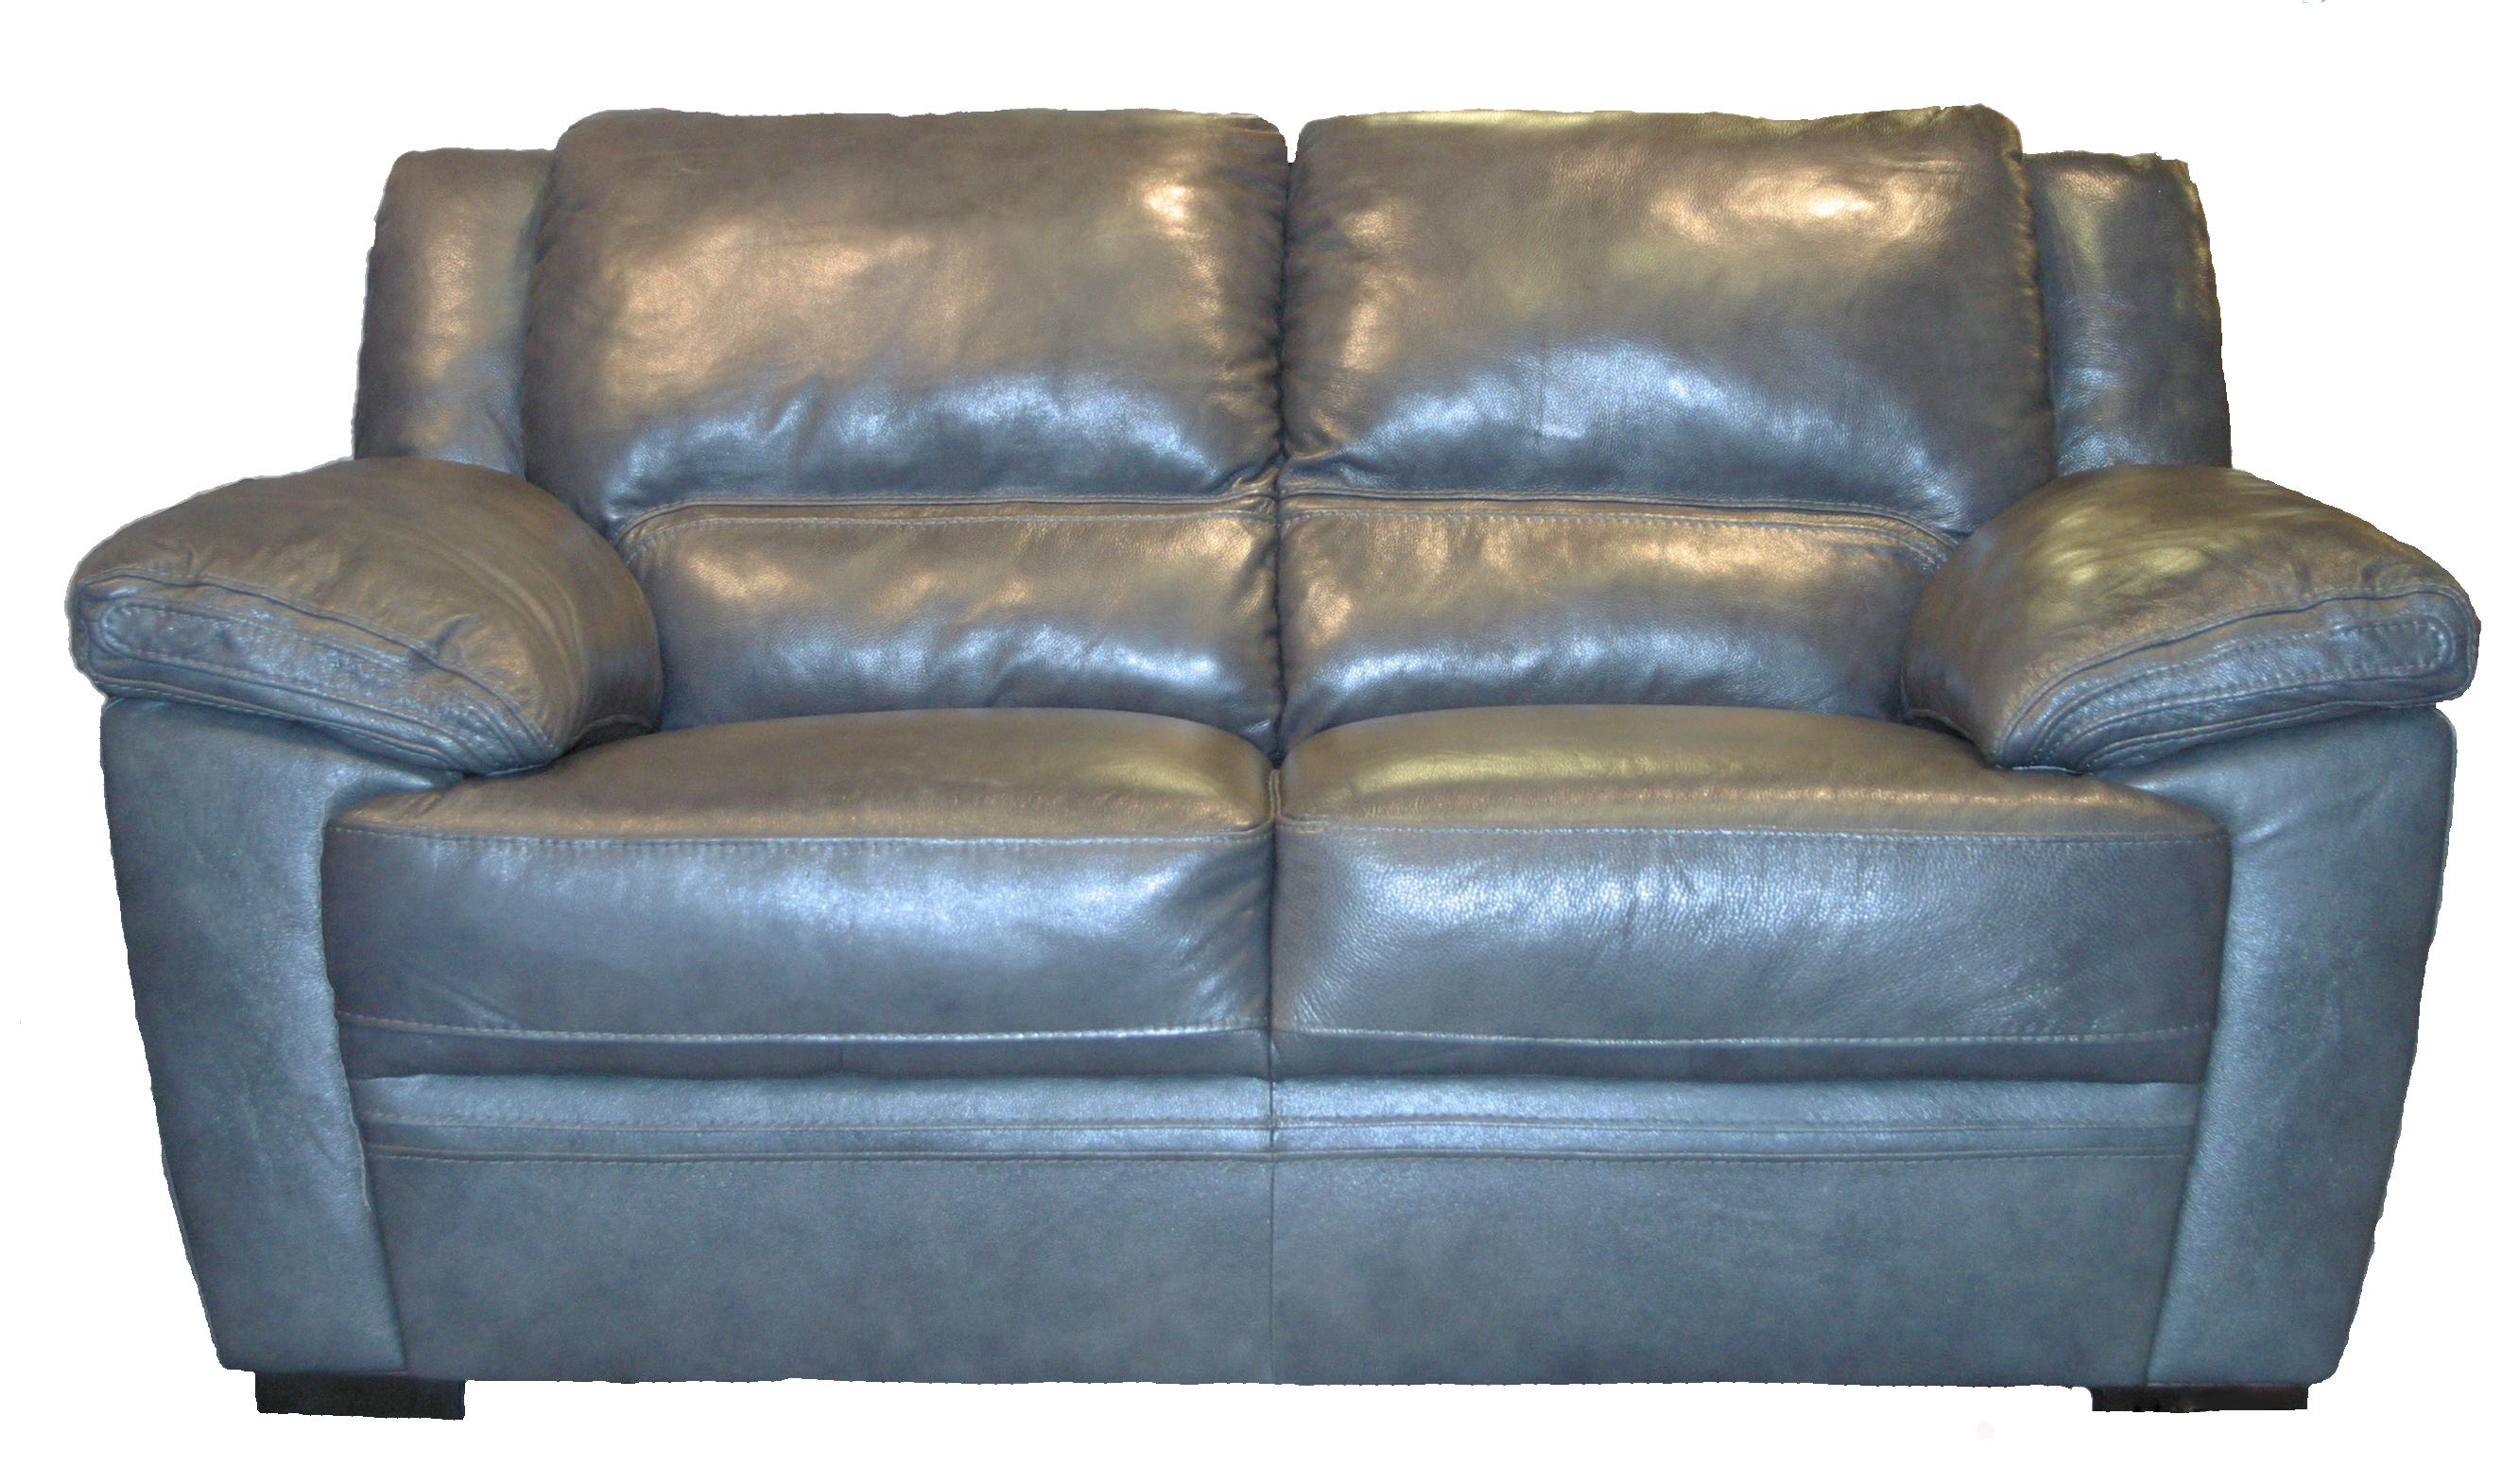 BFW Lifestyle 1963 Casual Loveseat - Item Number: 1963 Lvst M1215 Dk Grey